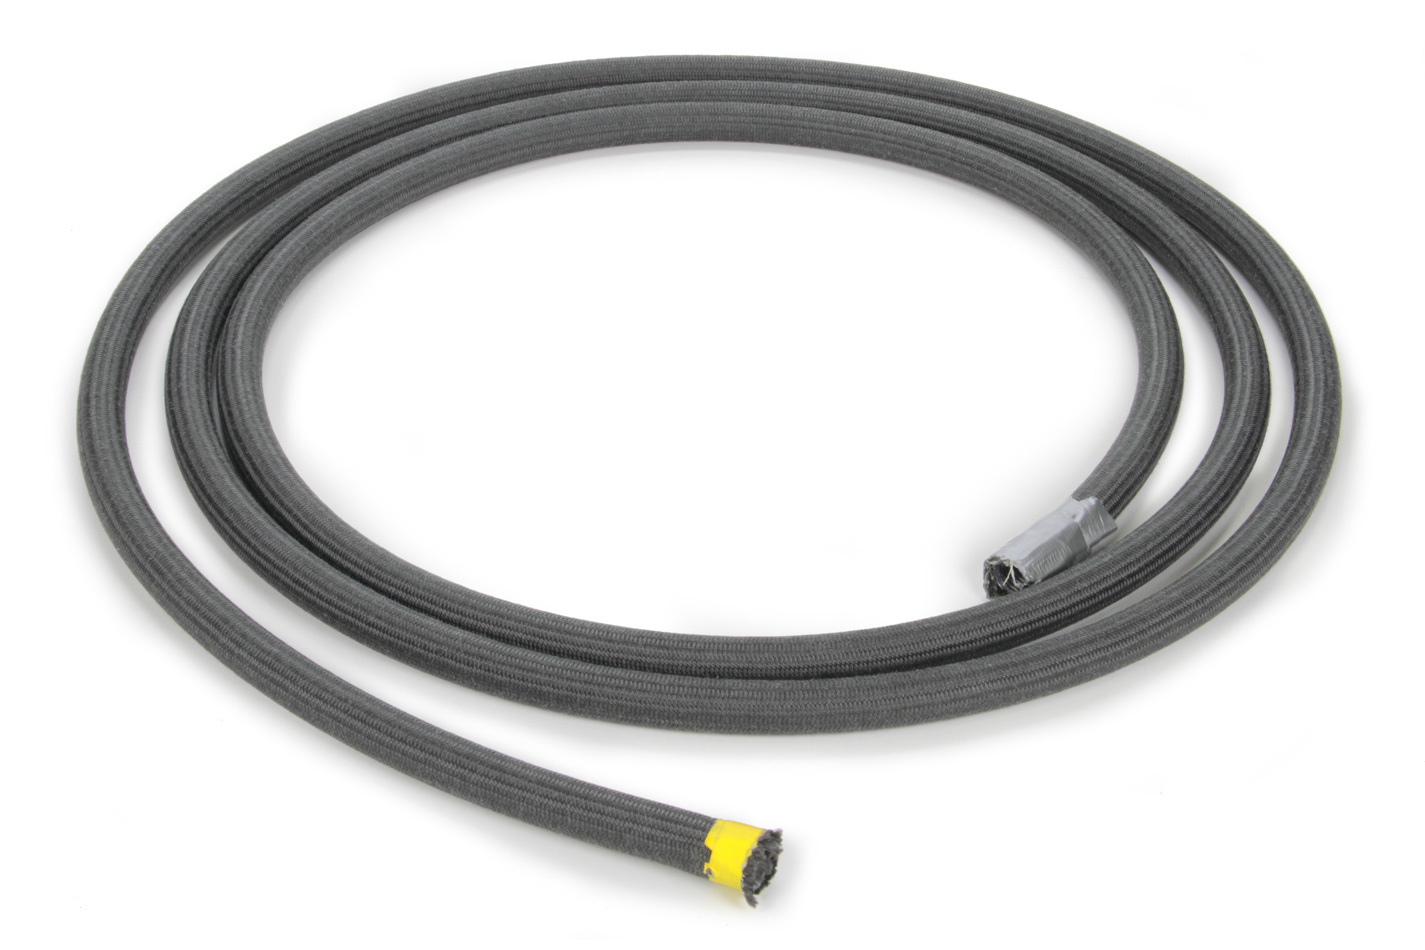 Earls 651006ERL Hose, Ultra-Flex, 6 AN, 10 ft, Braided Kevlar, Black, Each